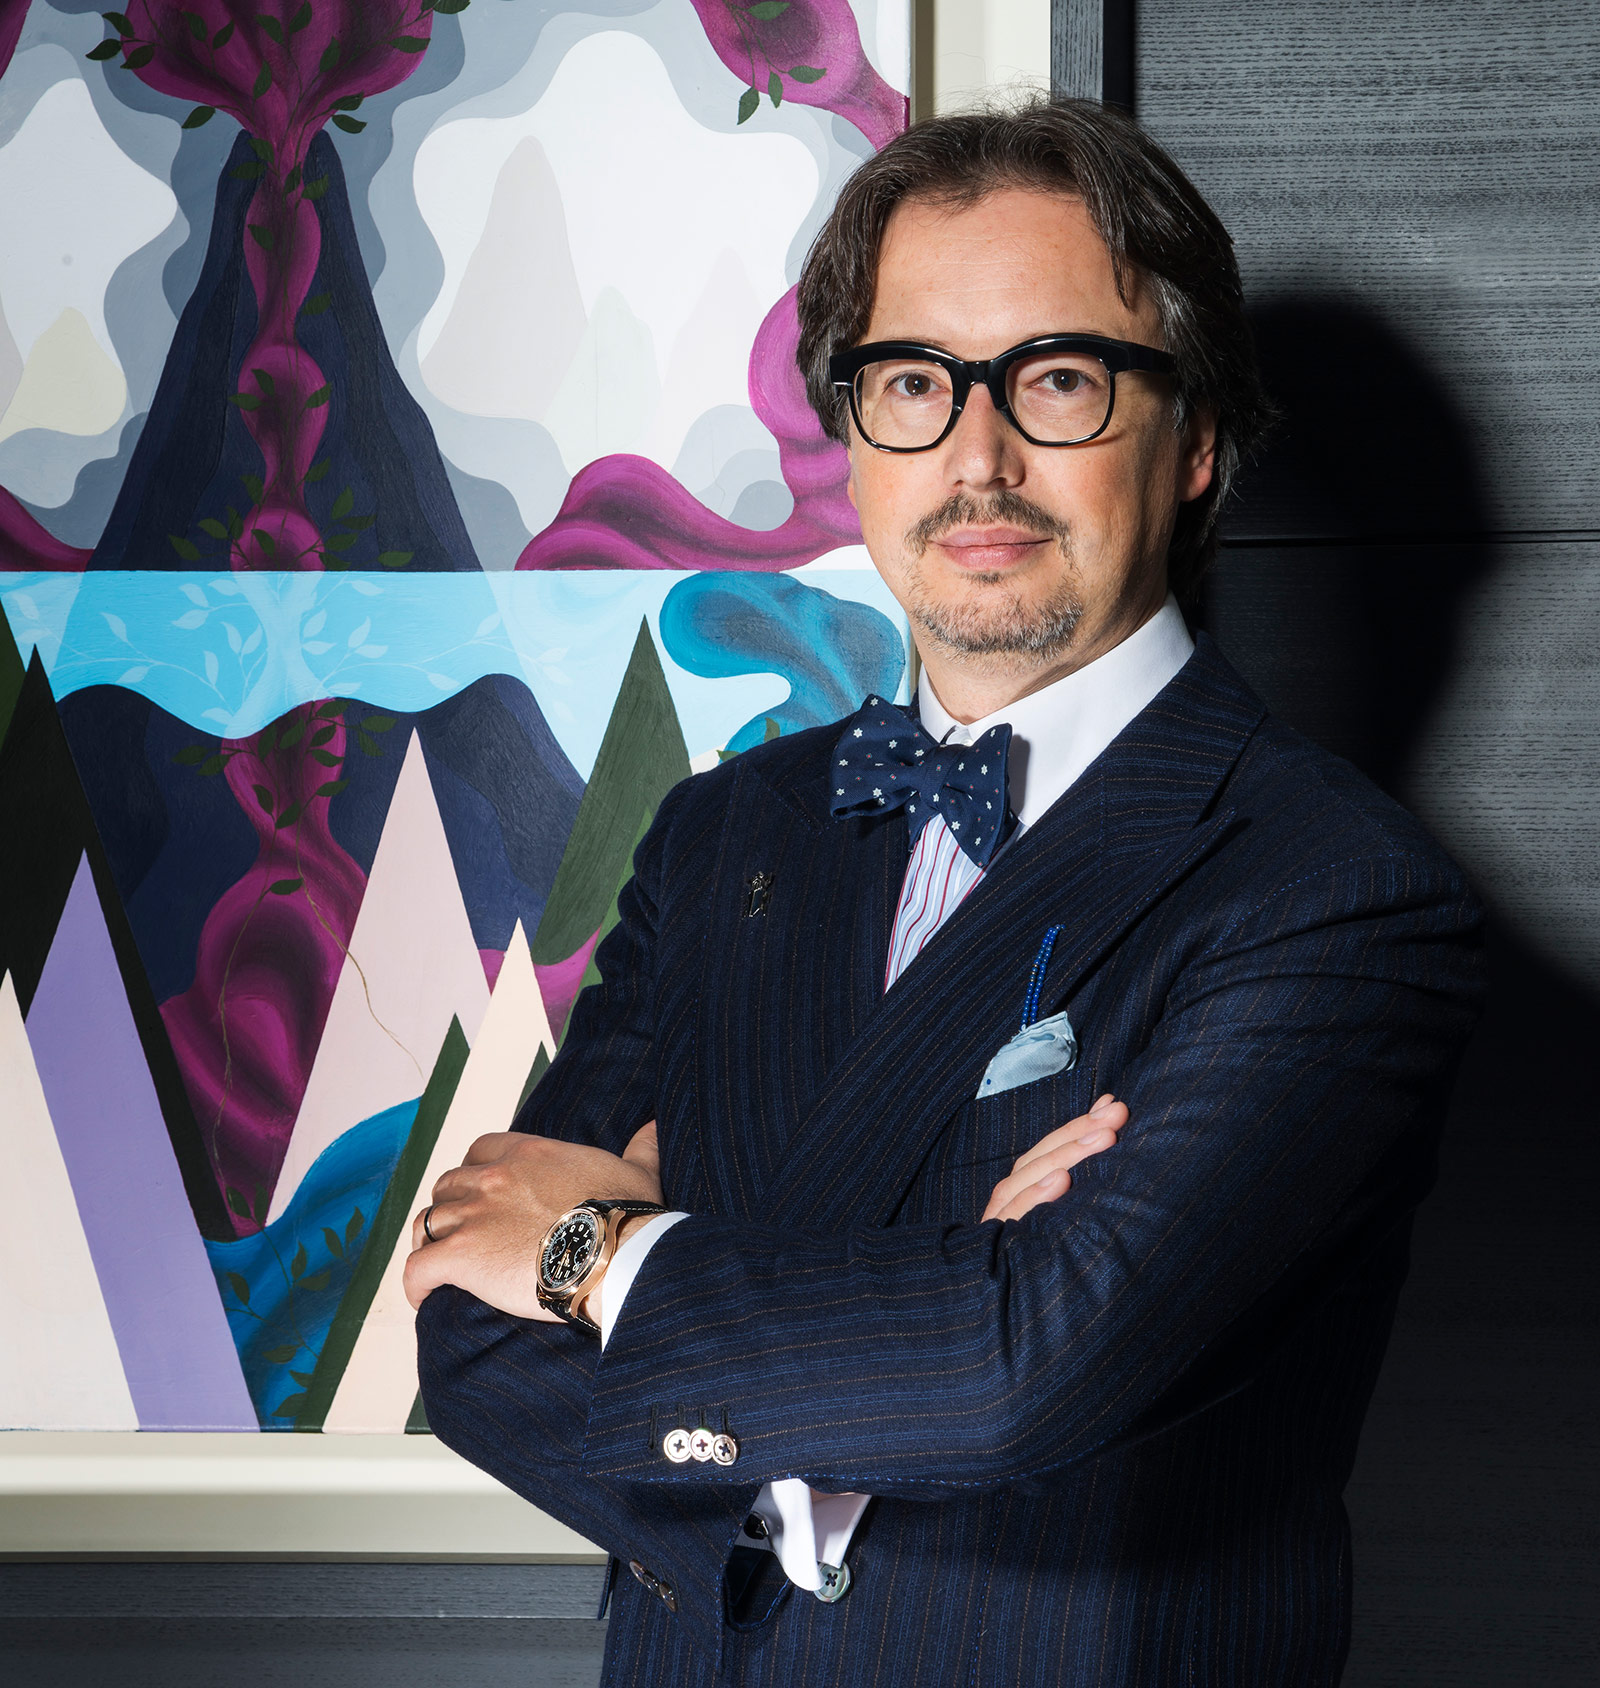 Davide Cerrato, Managing Director Of Montblanc Watch Division